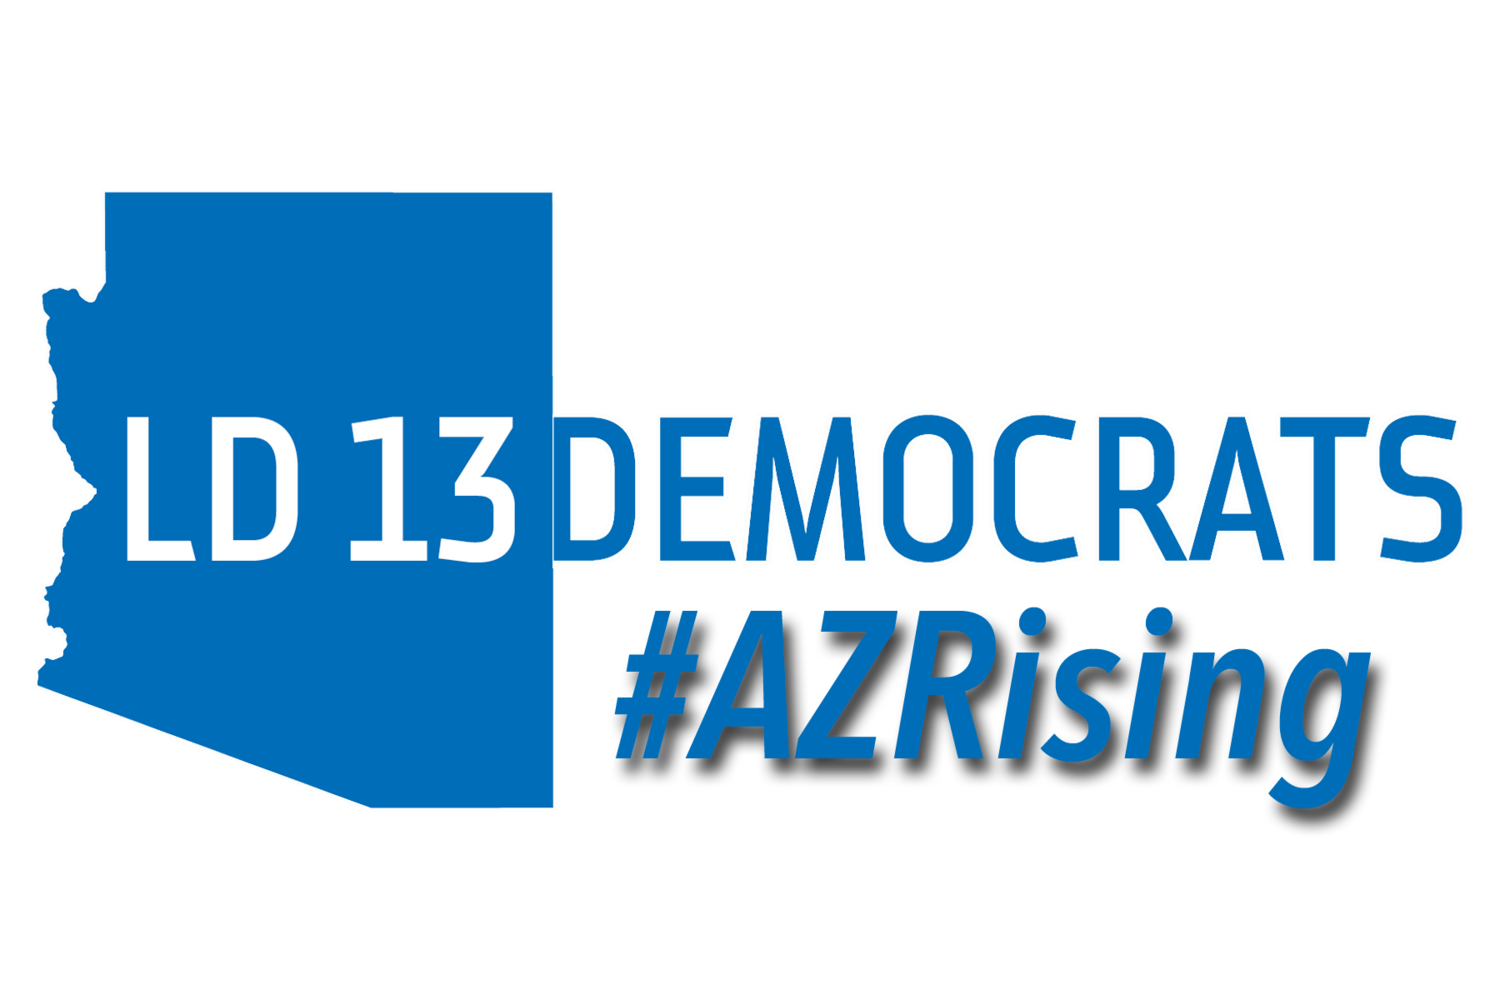 LD 13 Democratic Party